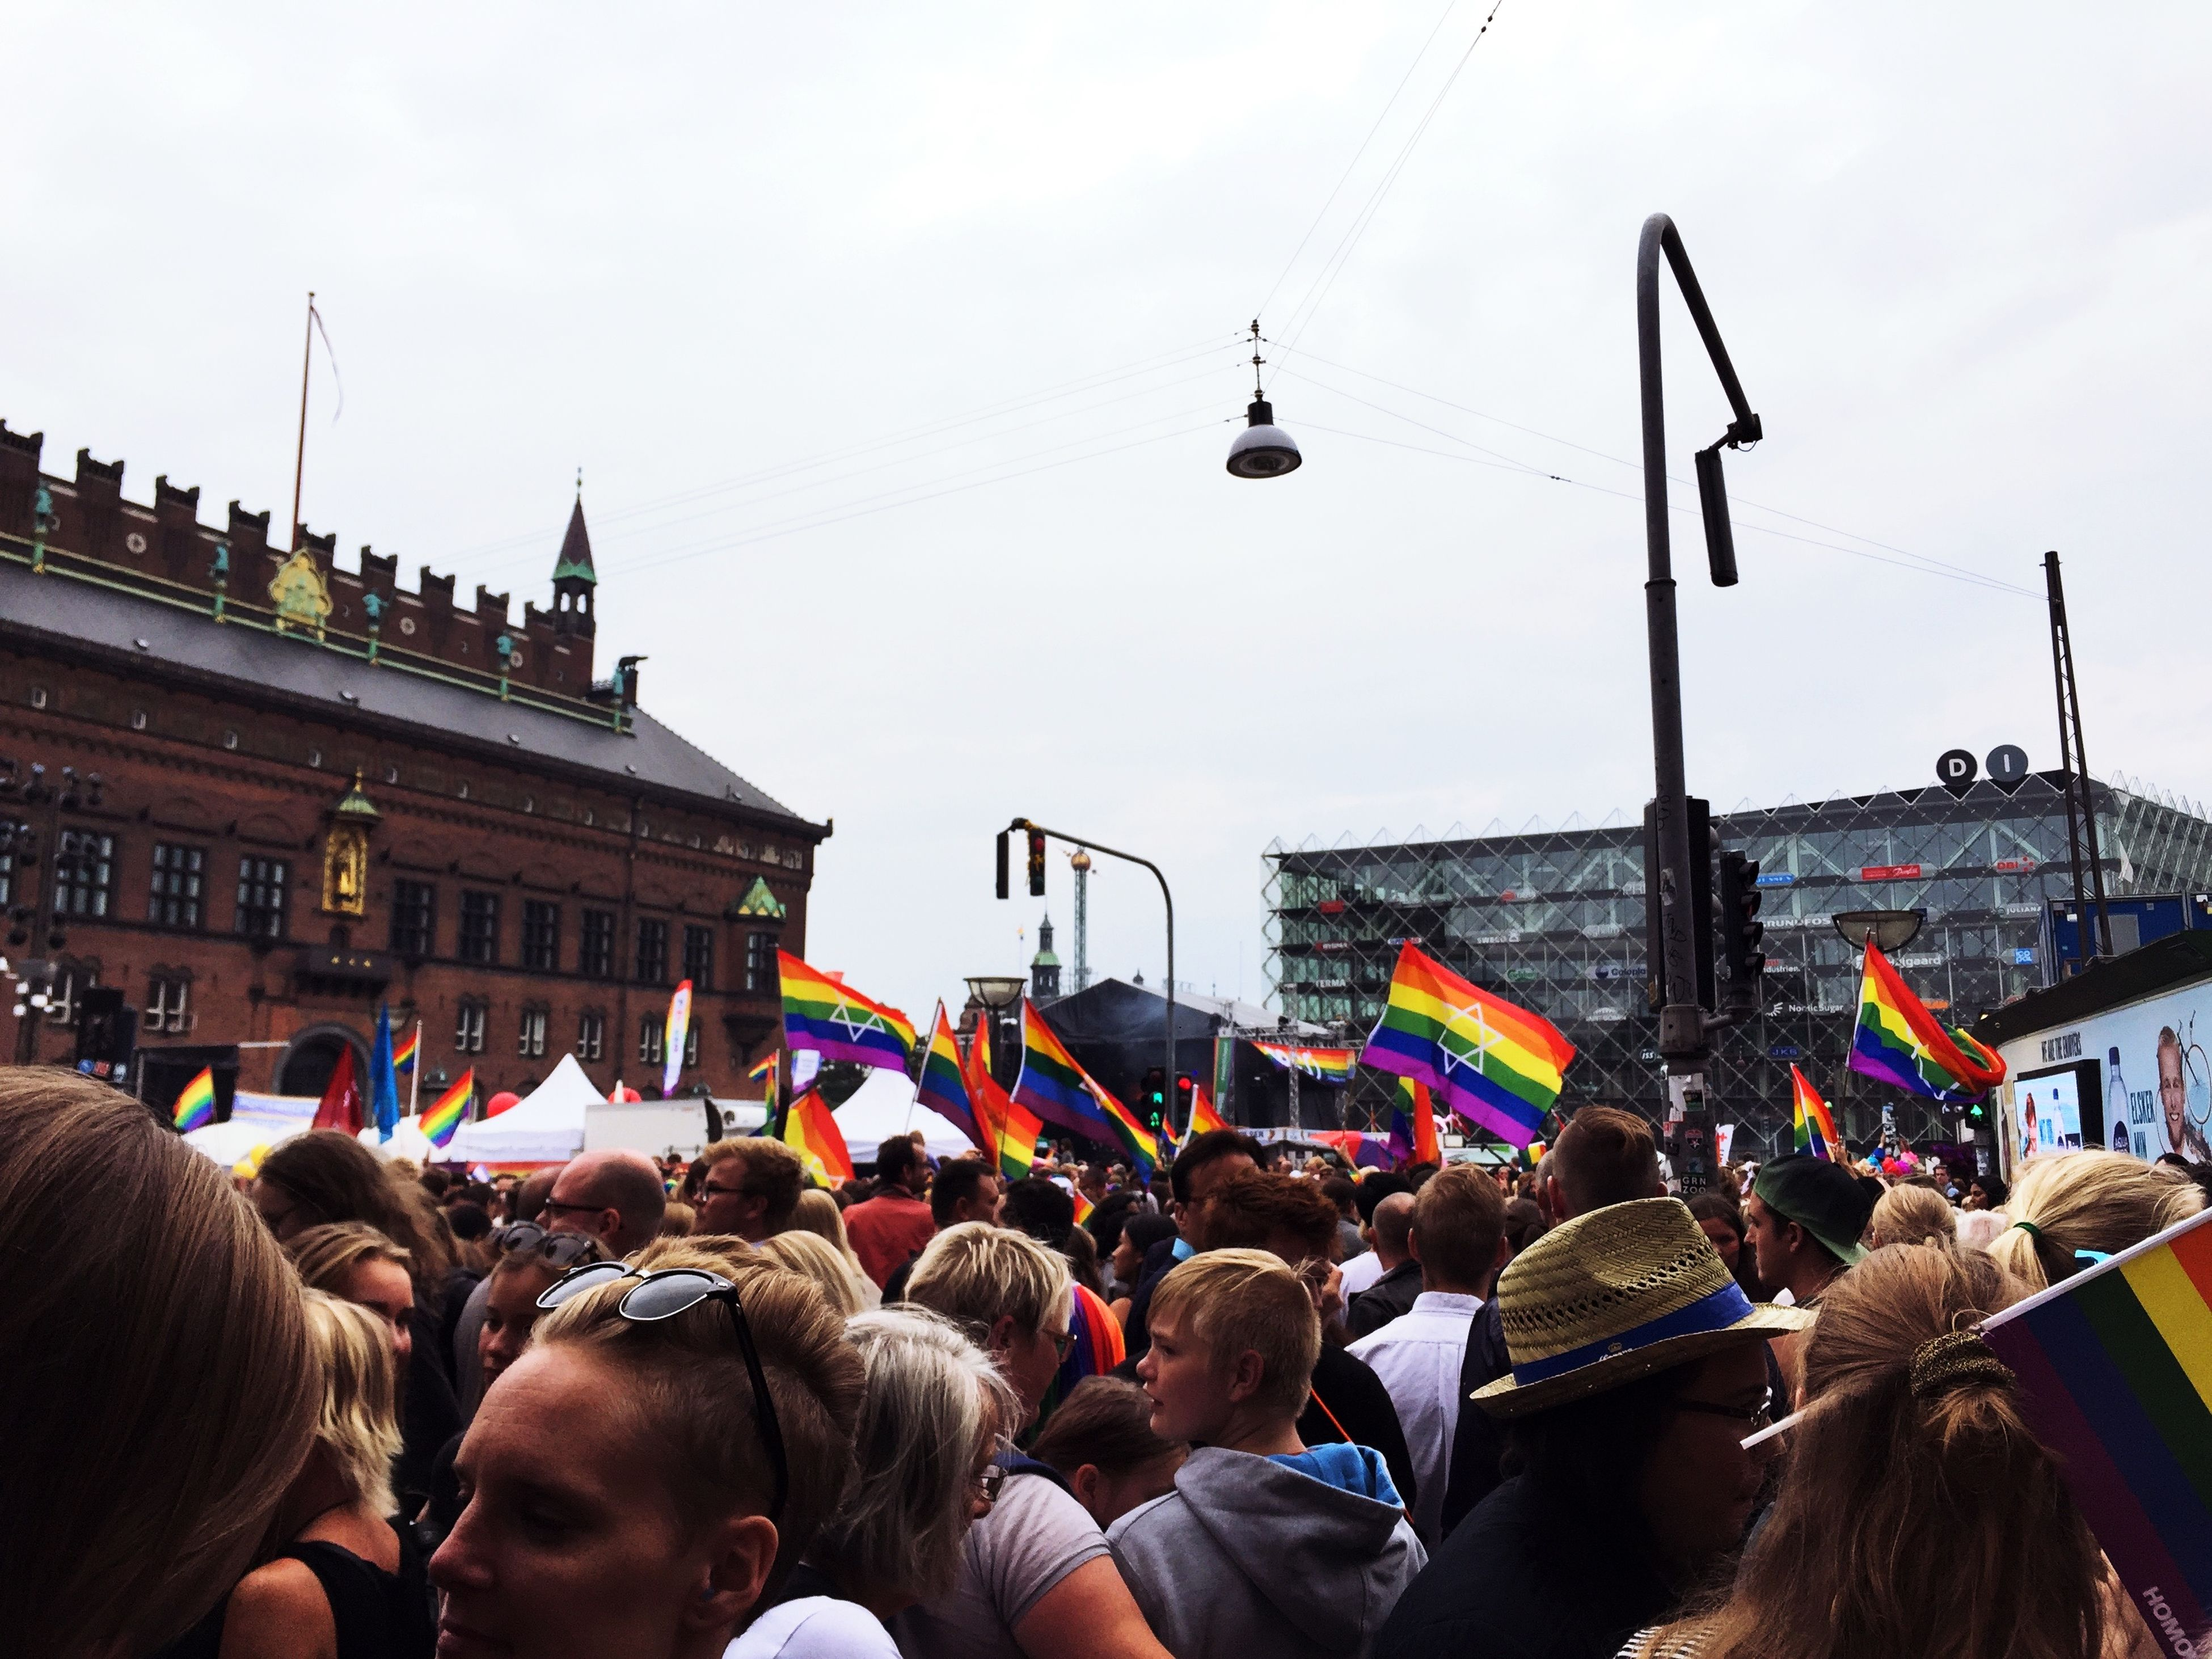 Crazy People Nice Day No Place For Fascism No Place For Homophobia No Place For Racism No Place For Sexism Pride